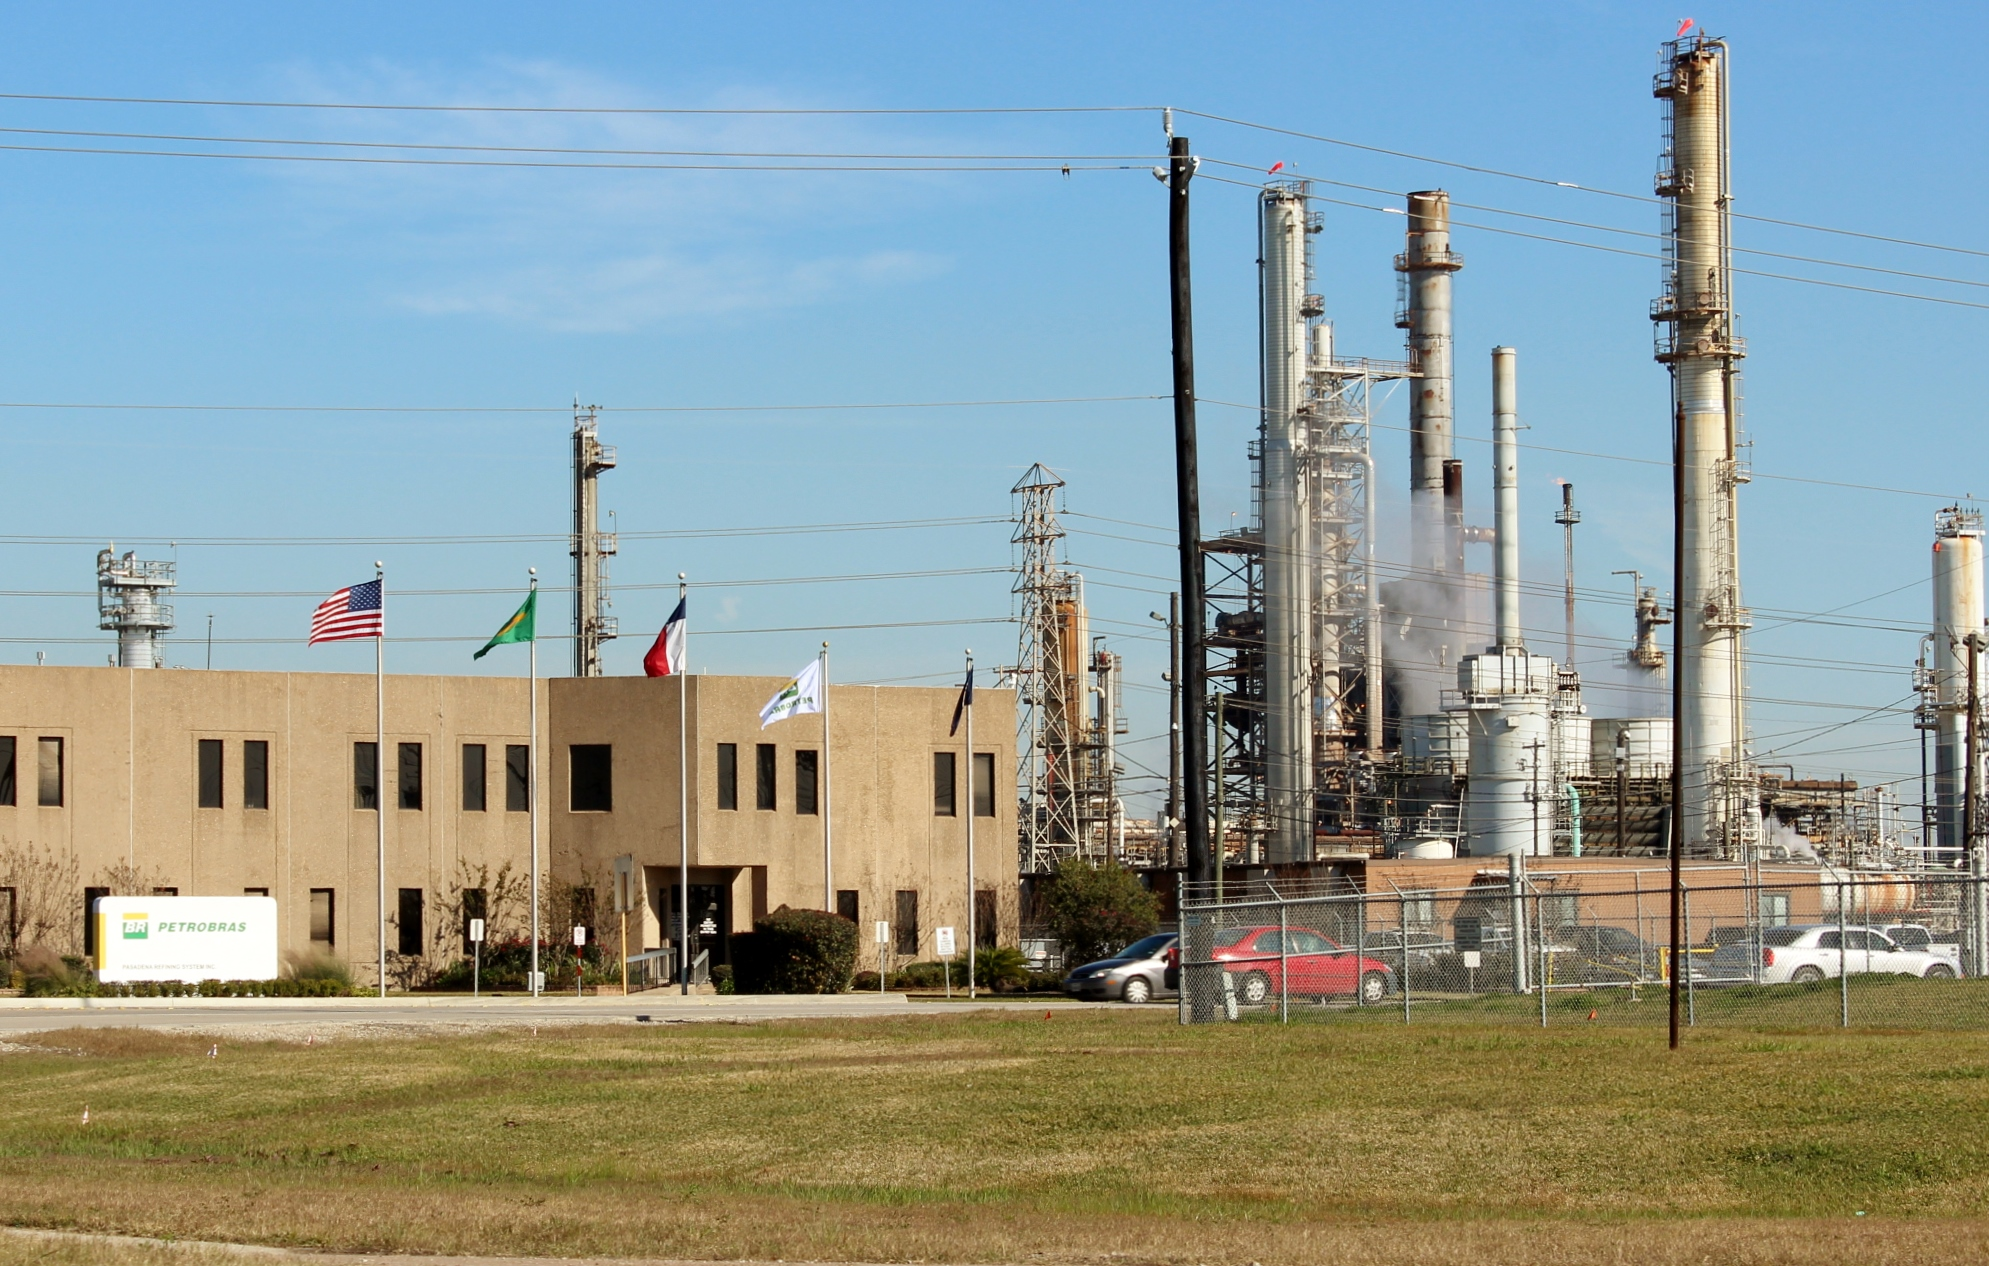 Petrobras's Pasadena Refining System plant is near the Washburn Tunnel on the Houston Ship Channel. Image: Dave Fehling, Houston Public Media